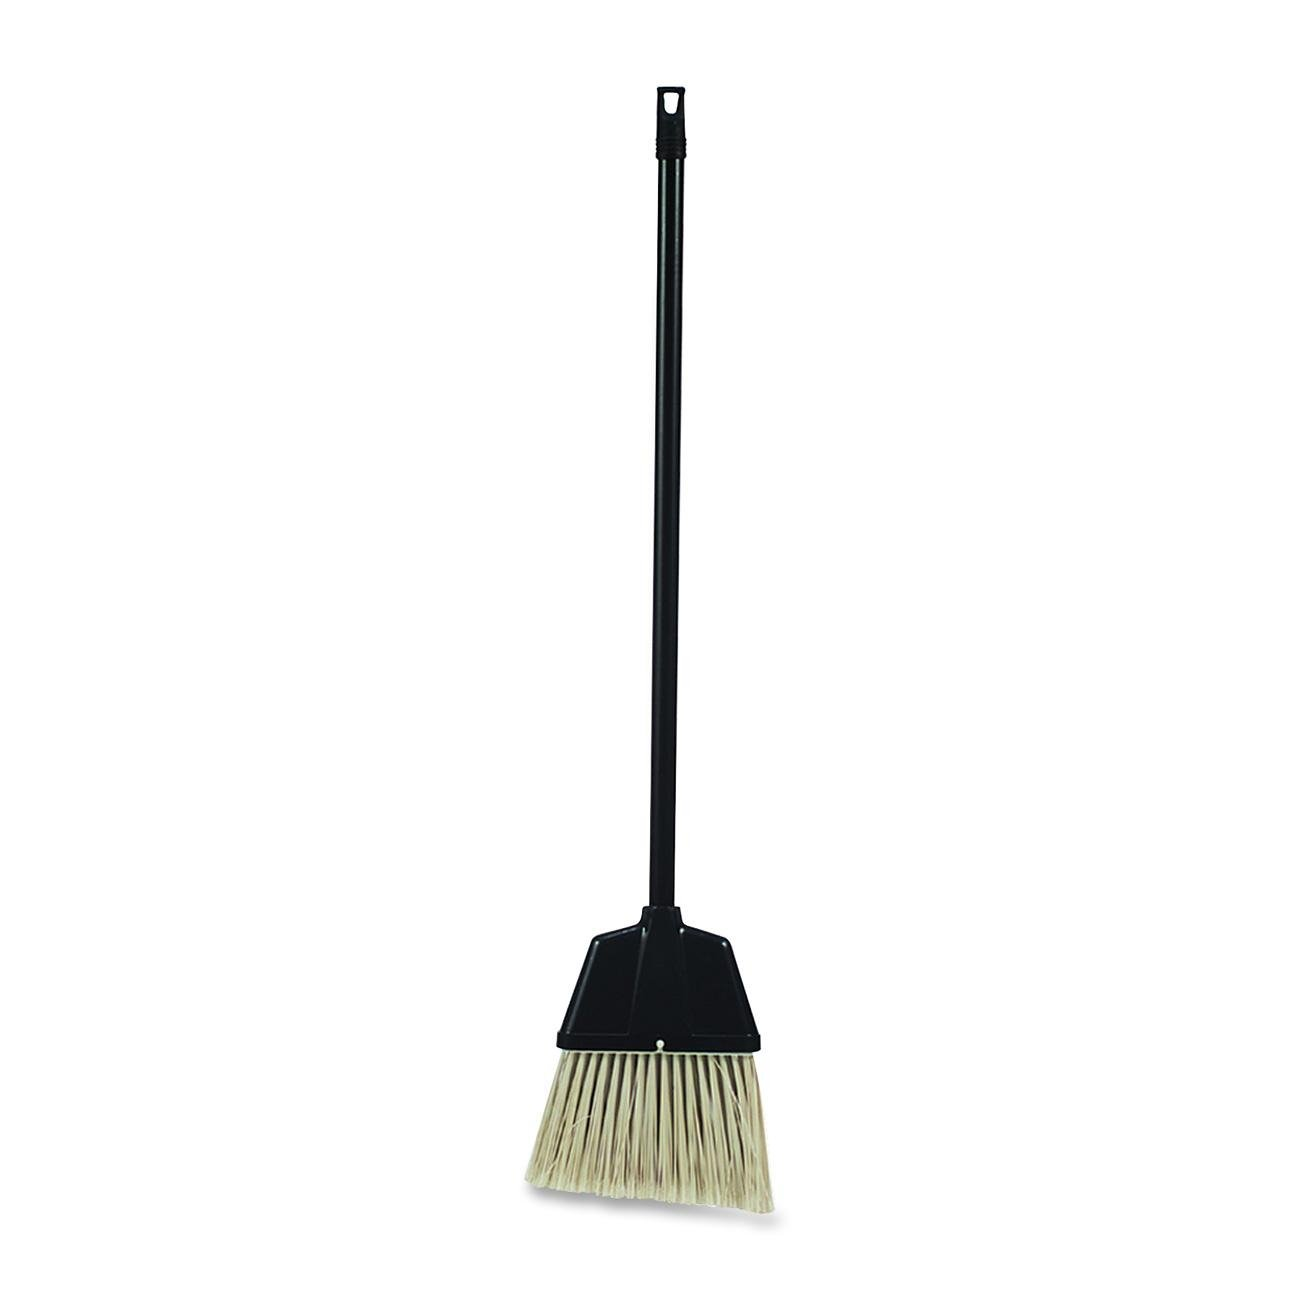 Genuine Joe GJO02408 Lobby Dust Pan Manual Broom with Handle, 32'' Handle Length